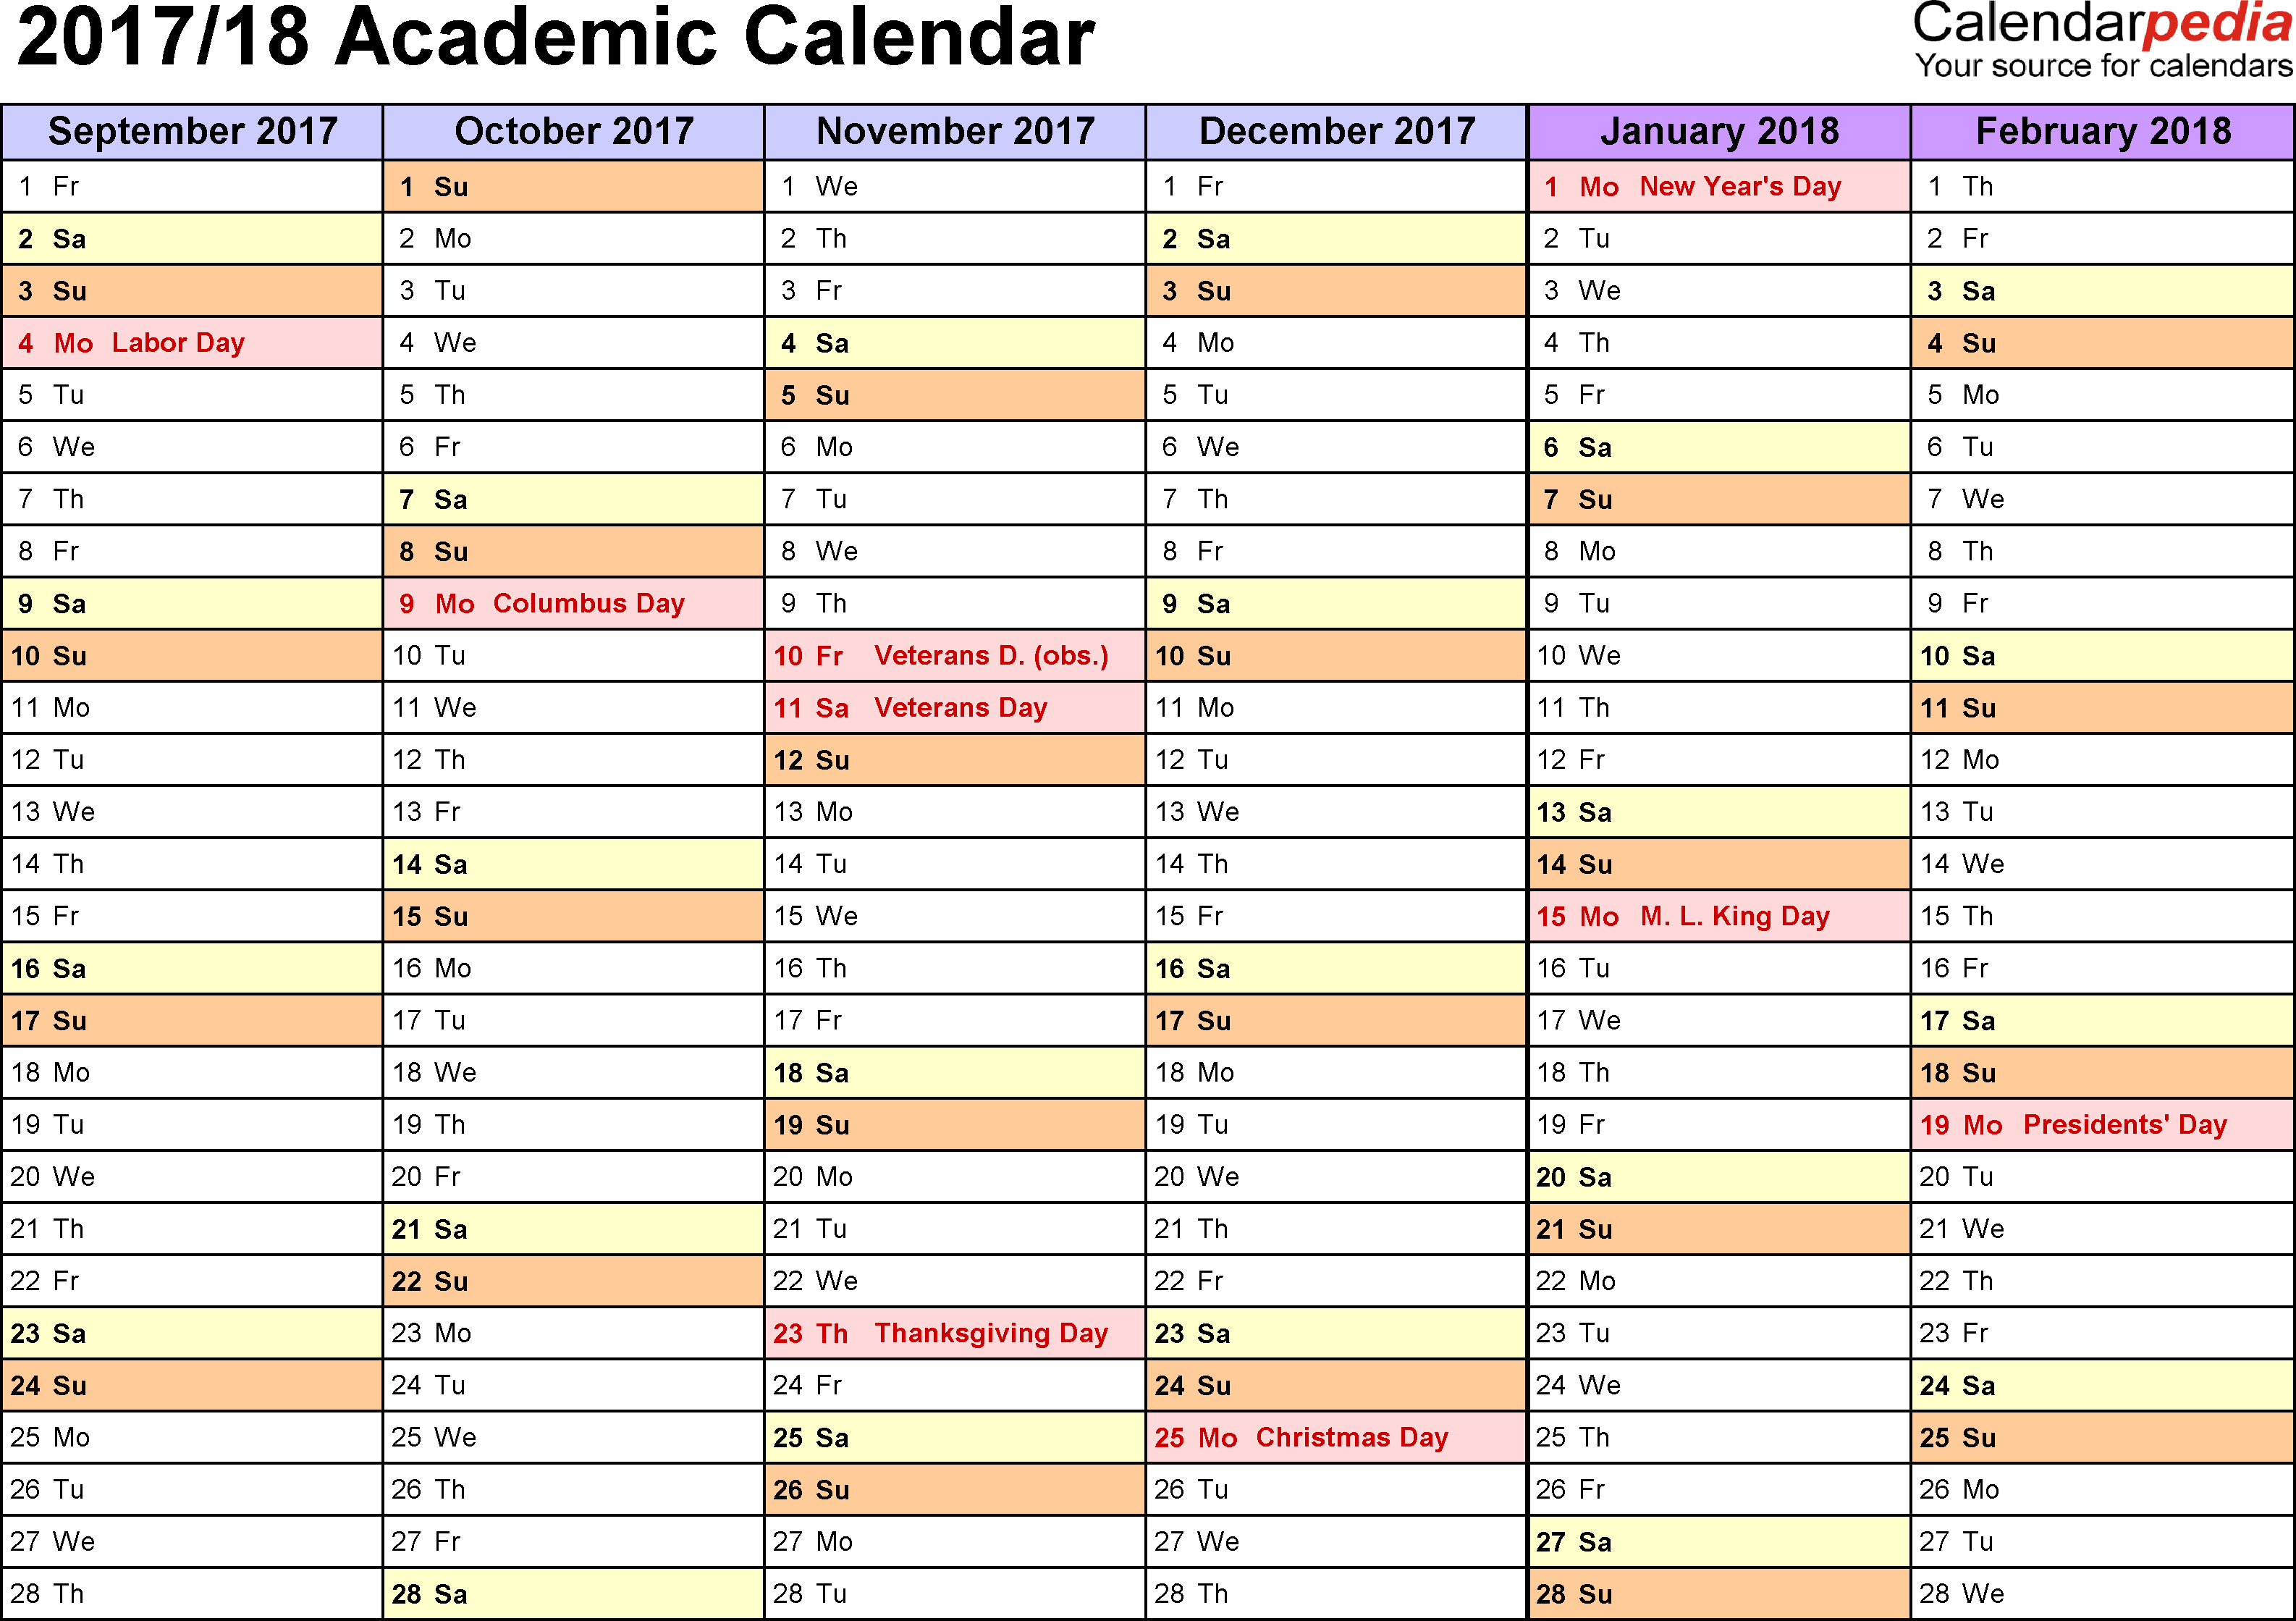 Template 3: Academic calendar 2017/18 for Excel, landscape orientation, months horizontally, 2 pages